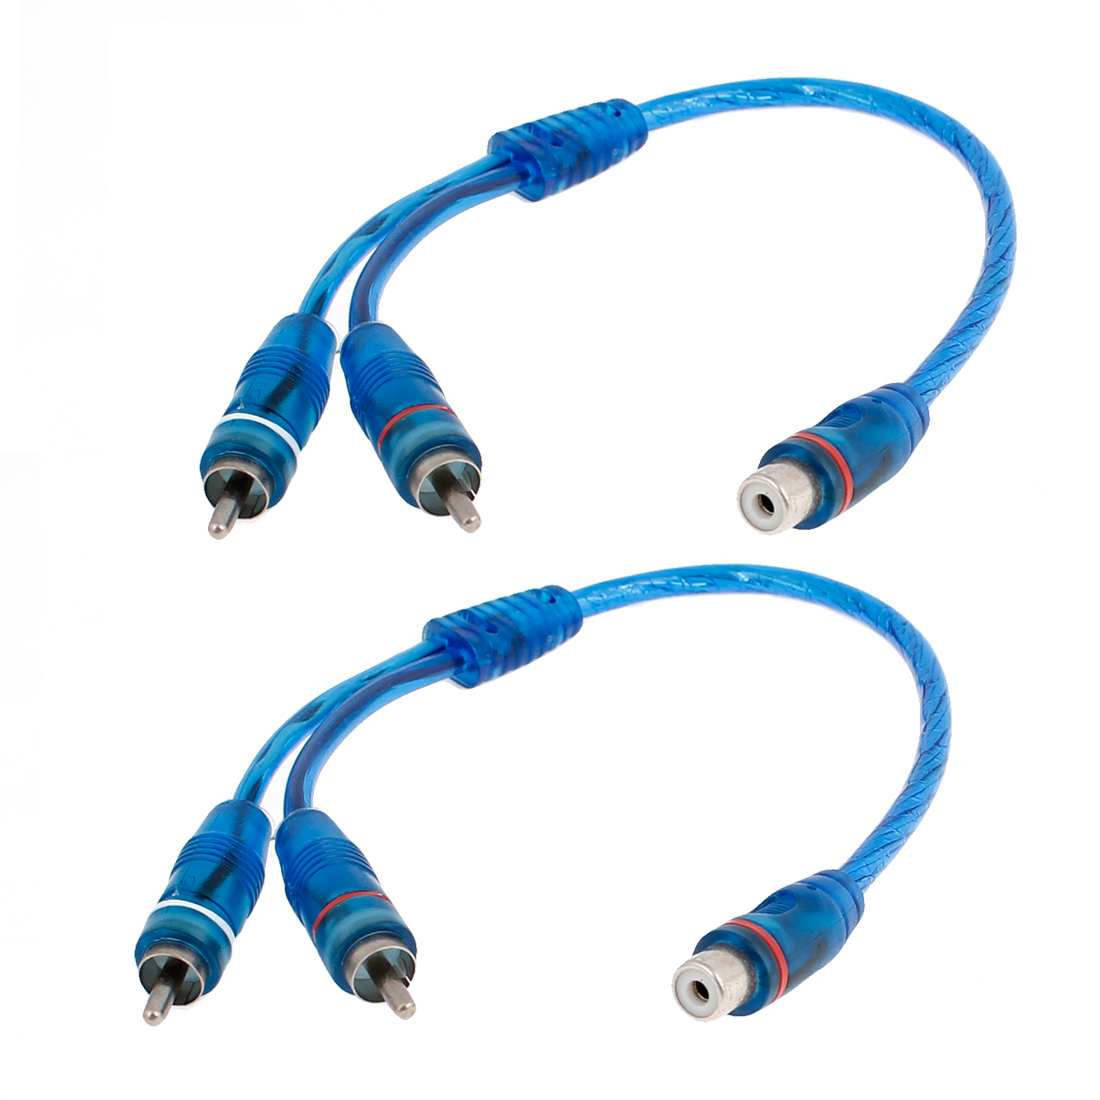 2pcs Female RCA Plug to 2 Male RCA Jacks Y Shaped Adapter Splitter Cable Blue